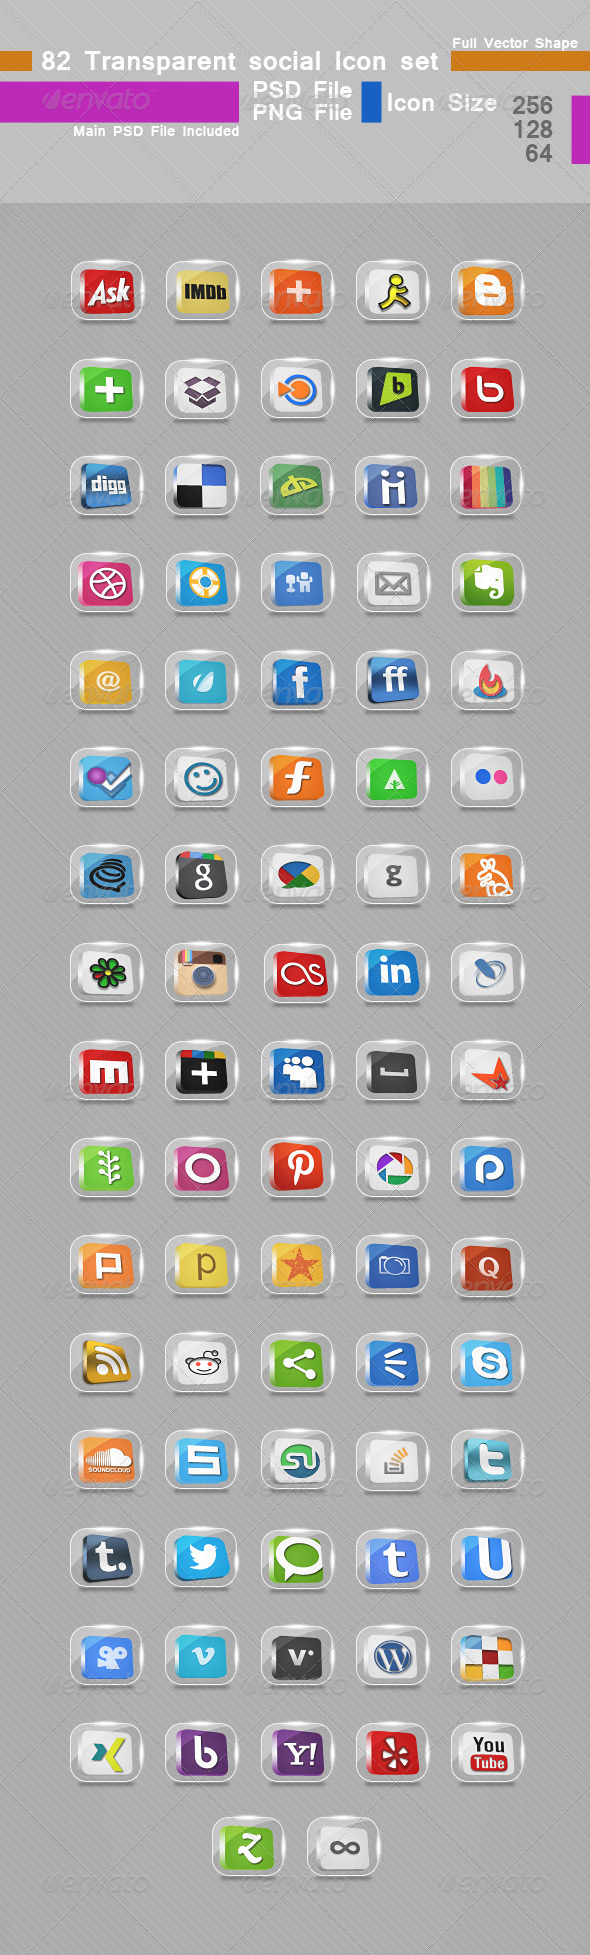 GraphicRiver 82 Transparent Social Icon set 5344703